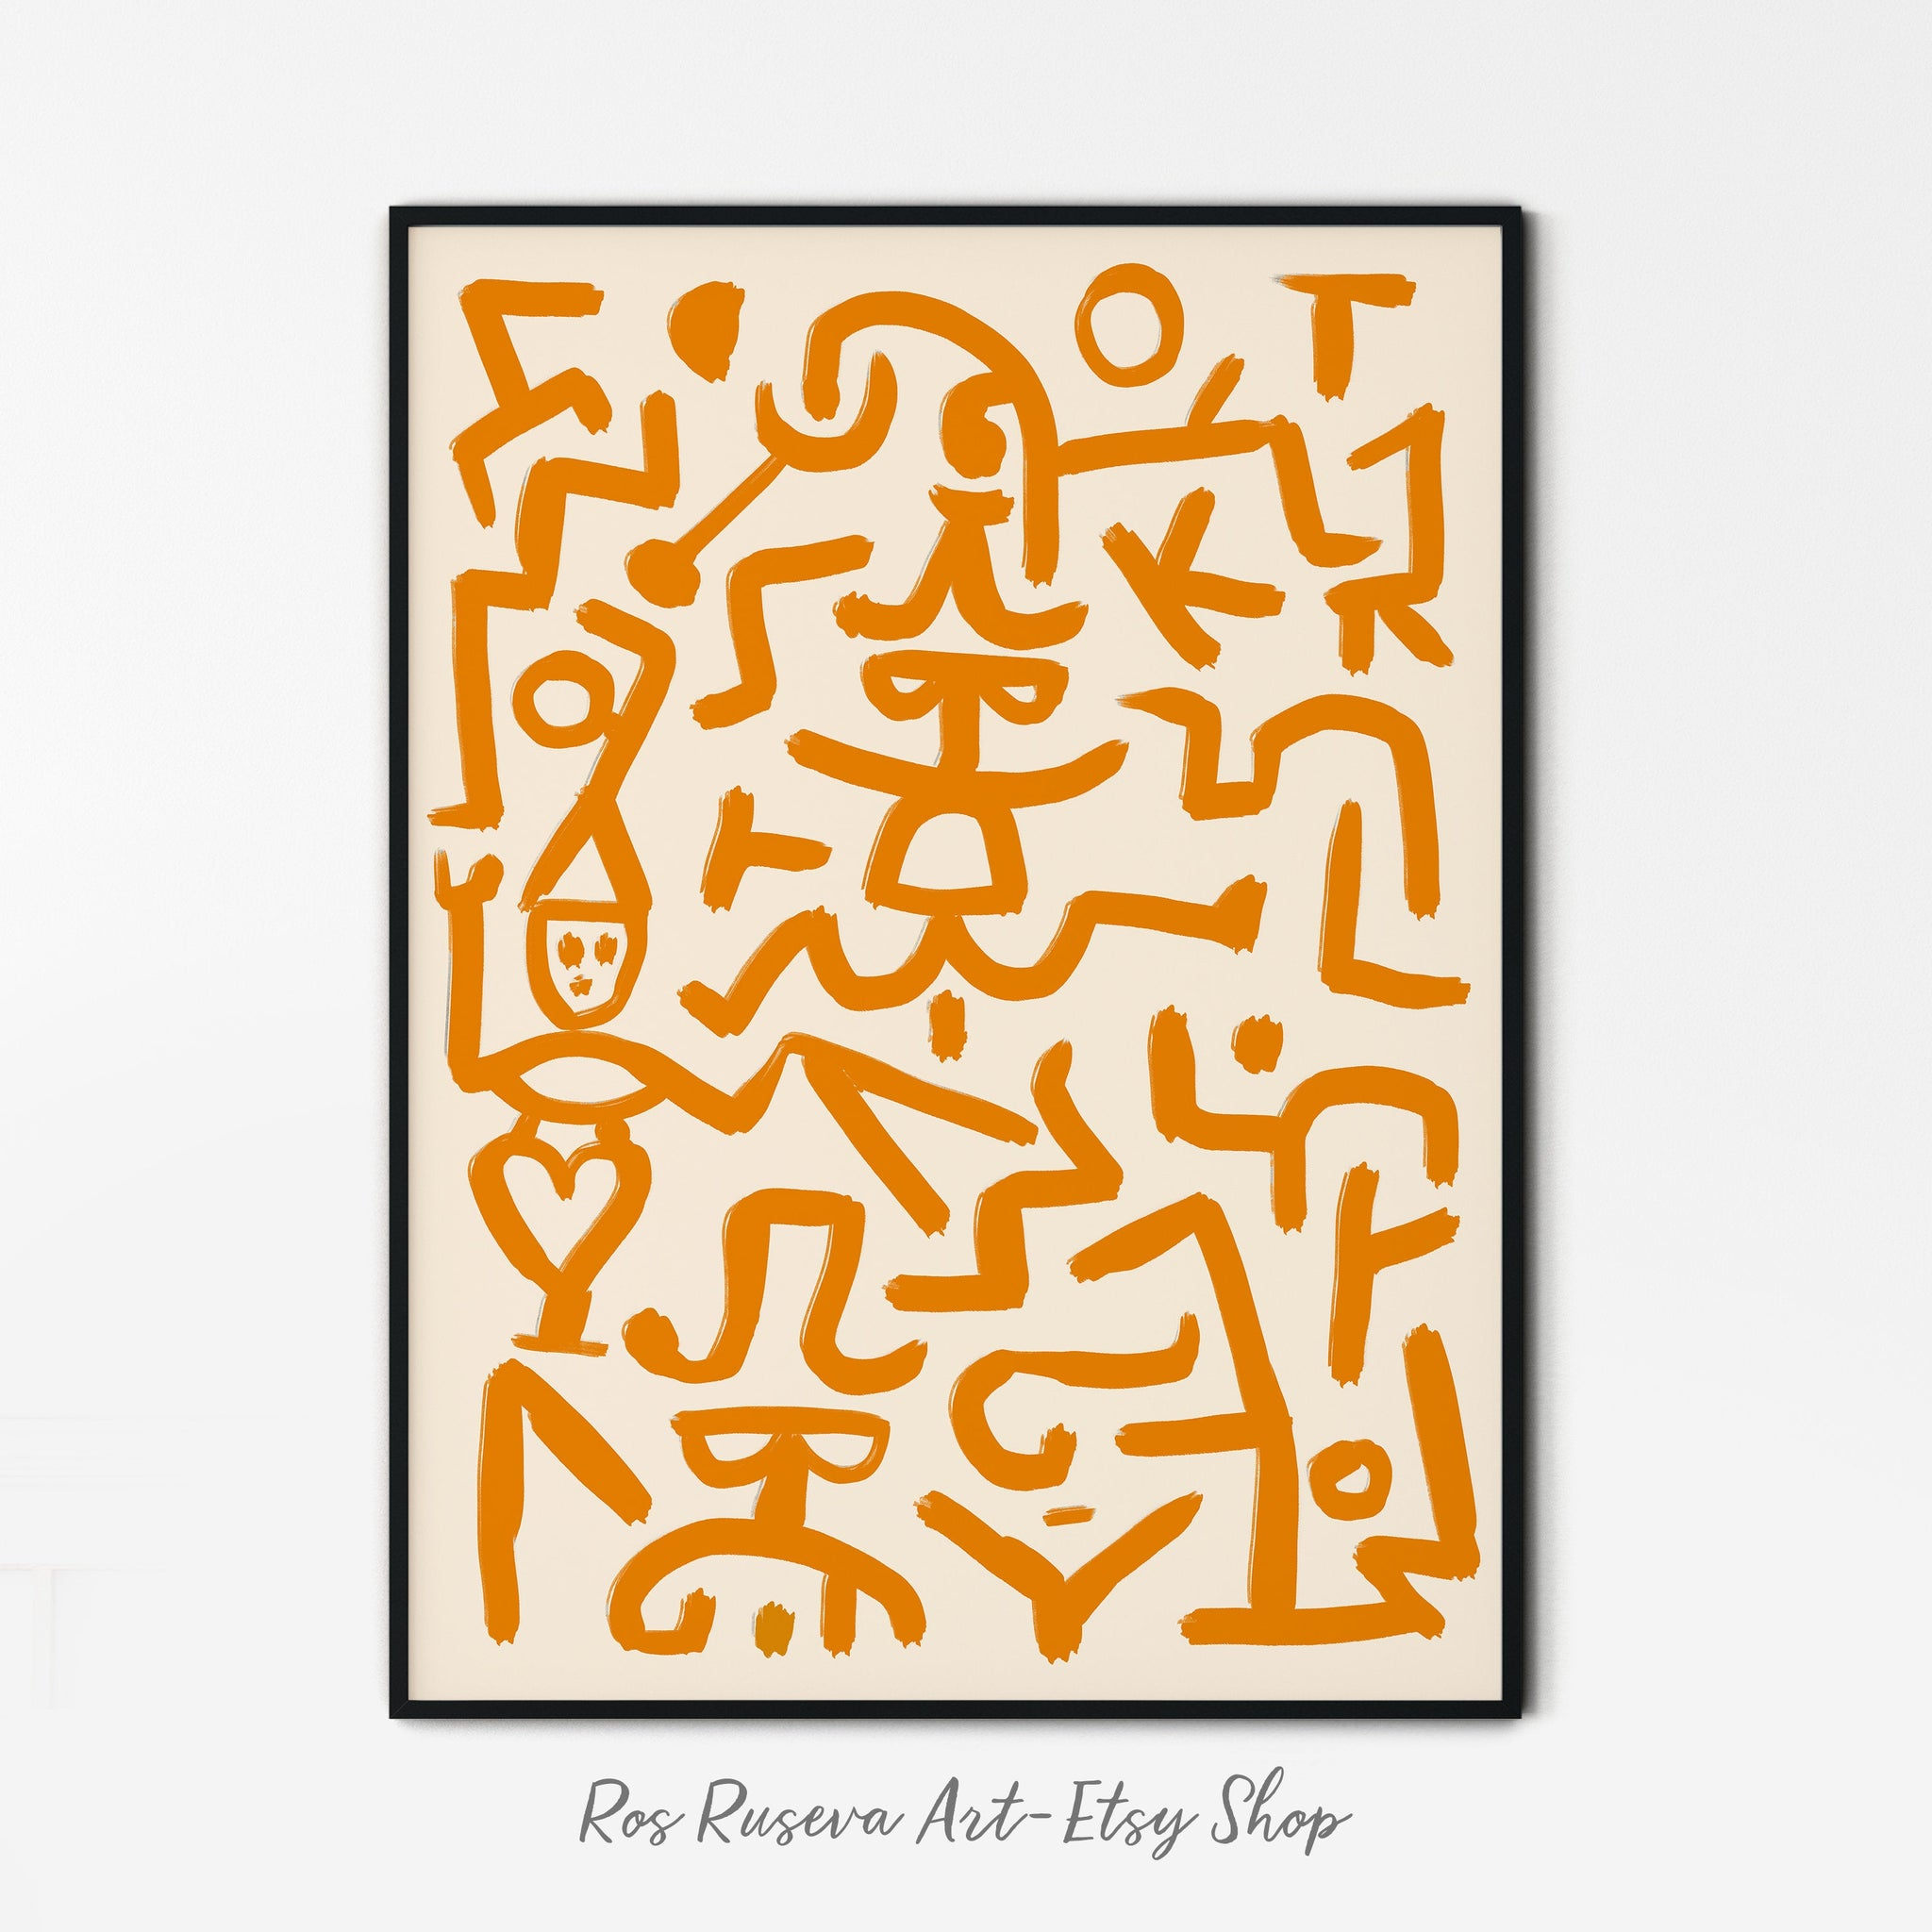 Paul Klee Poster, Paul Klee Art Print, Modern Minimalist, Klee Wall Art, Abstract Brush Strokes Print, Paul Klee Exhibition poster